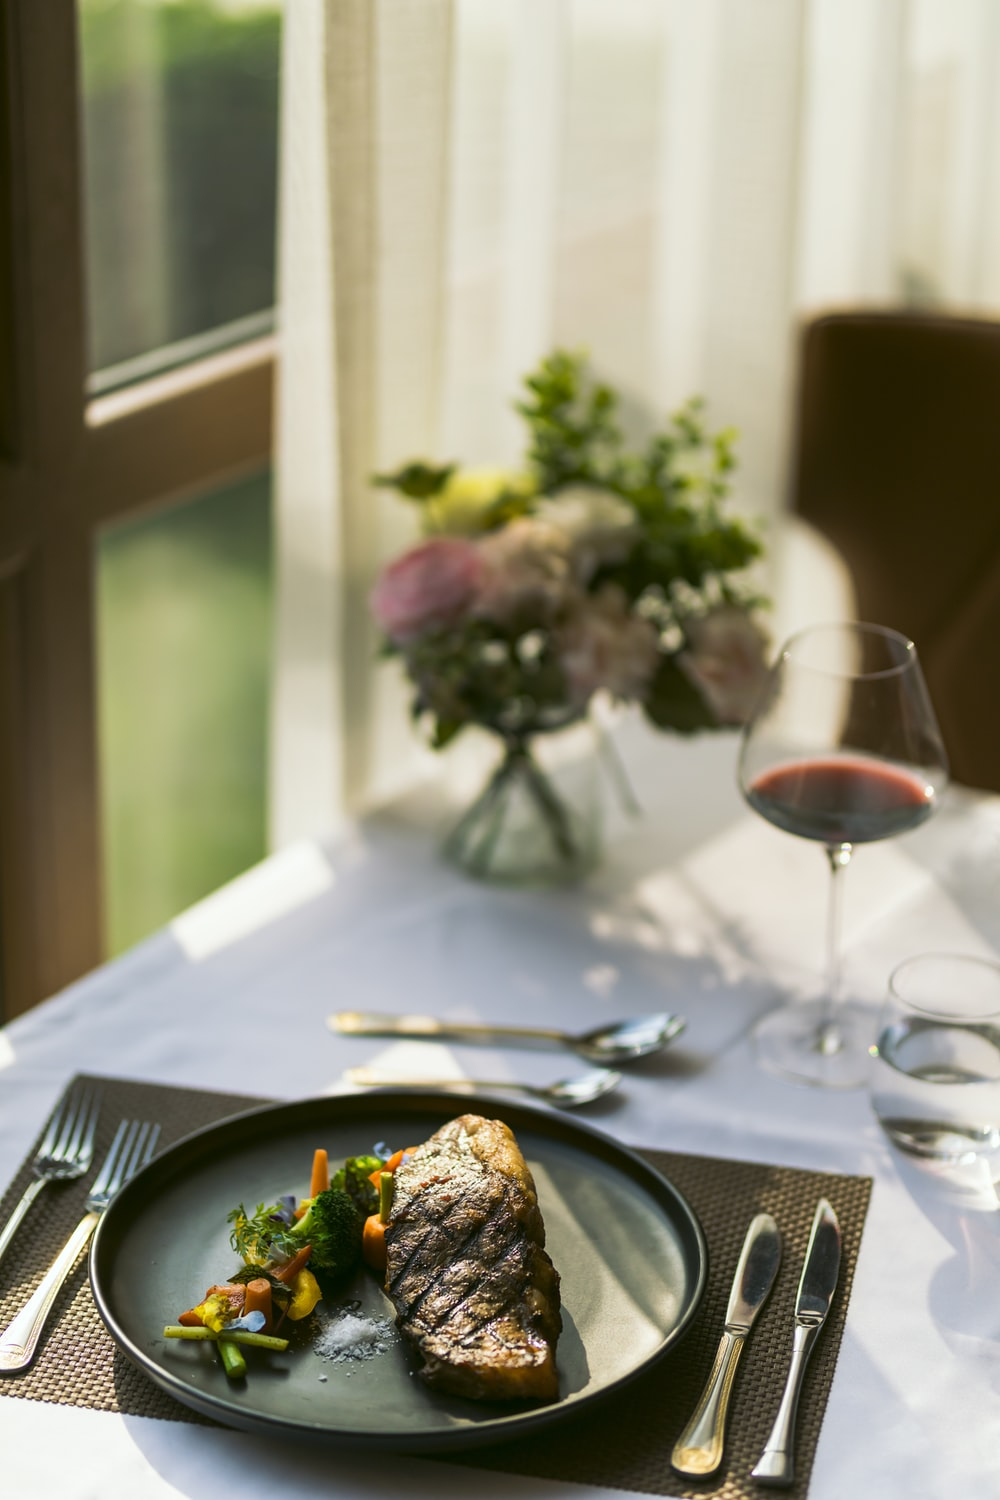 cooked food on black ceramic plate beside wine glass on table